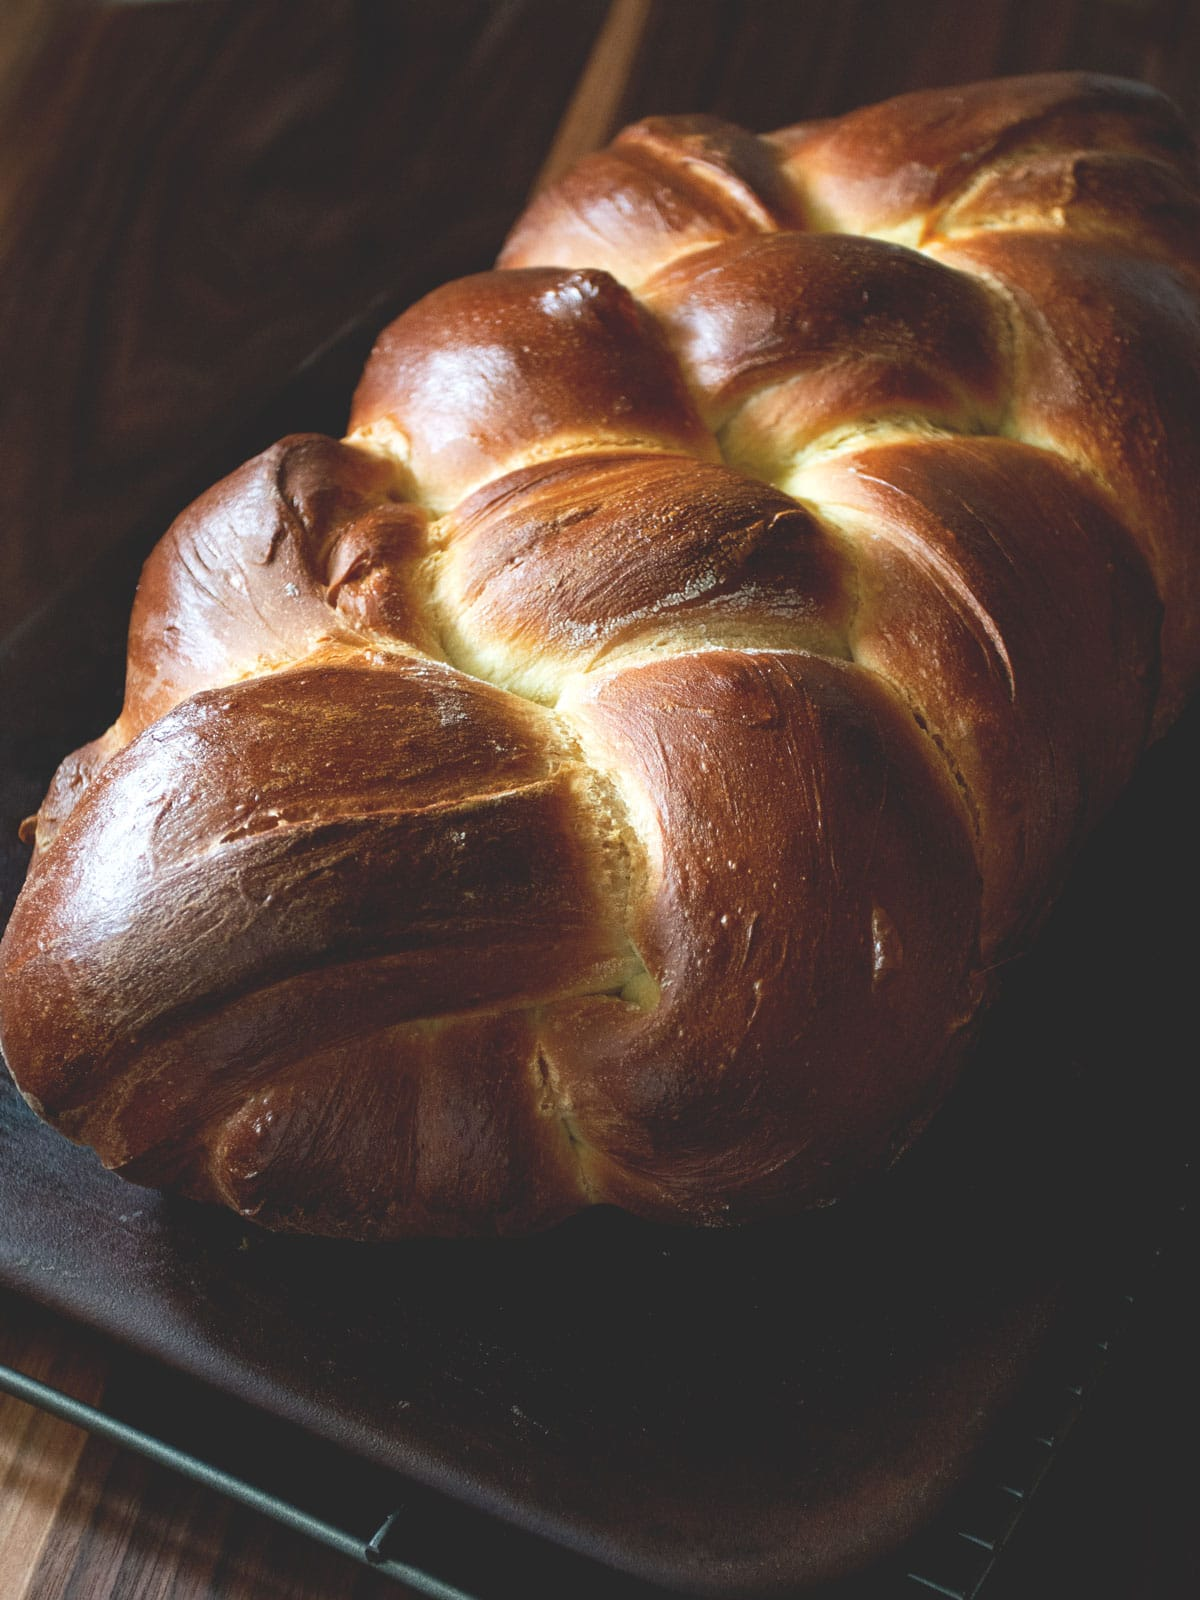 Challah is a beautifully braided, and slightly sweet bread. It uses simple, and basic ingredients. While it looks impressive, it is quite simple to make. Get the recipe and watch a tutorial video from Cosmopolitan Cornbread.